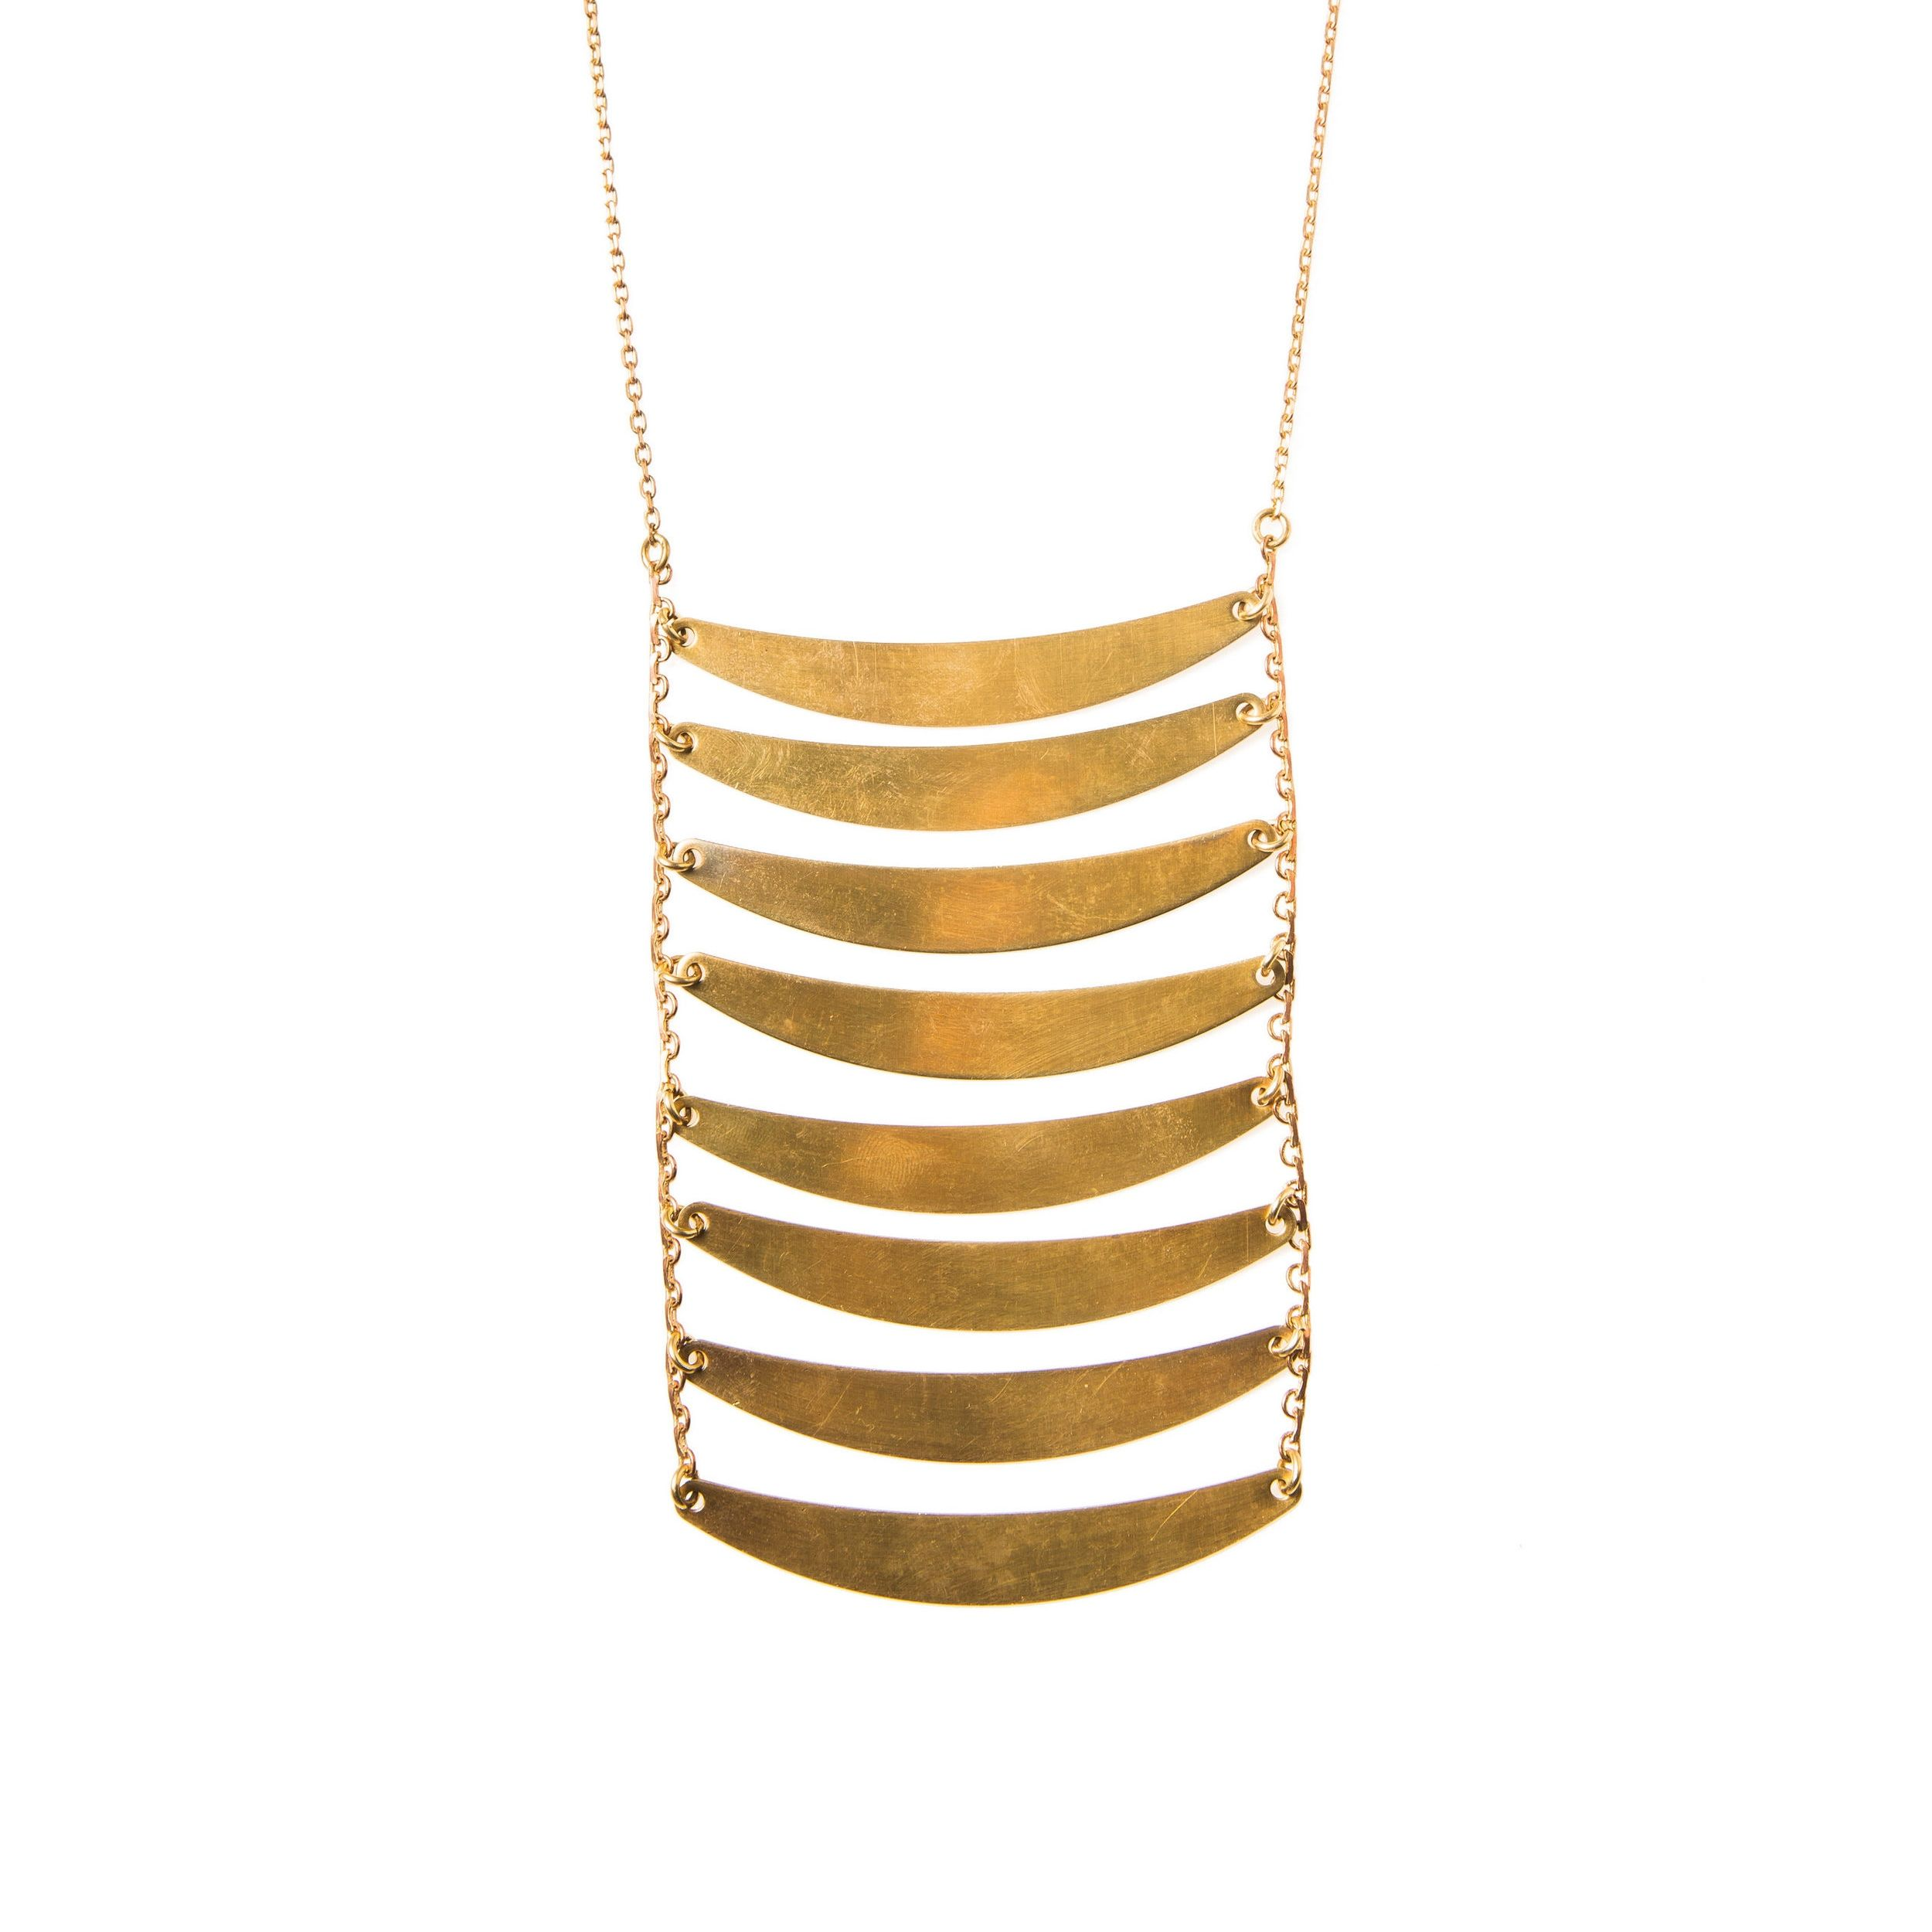 """Handmade oxidized brass Ladder necklace, available in three sizes: 8 steps on 20"""" chain with a 3""""extender ..."""